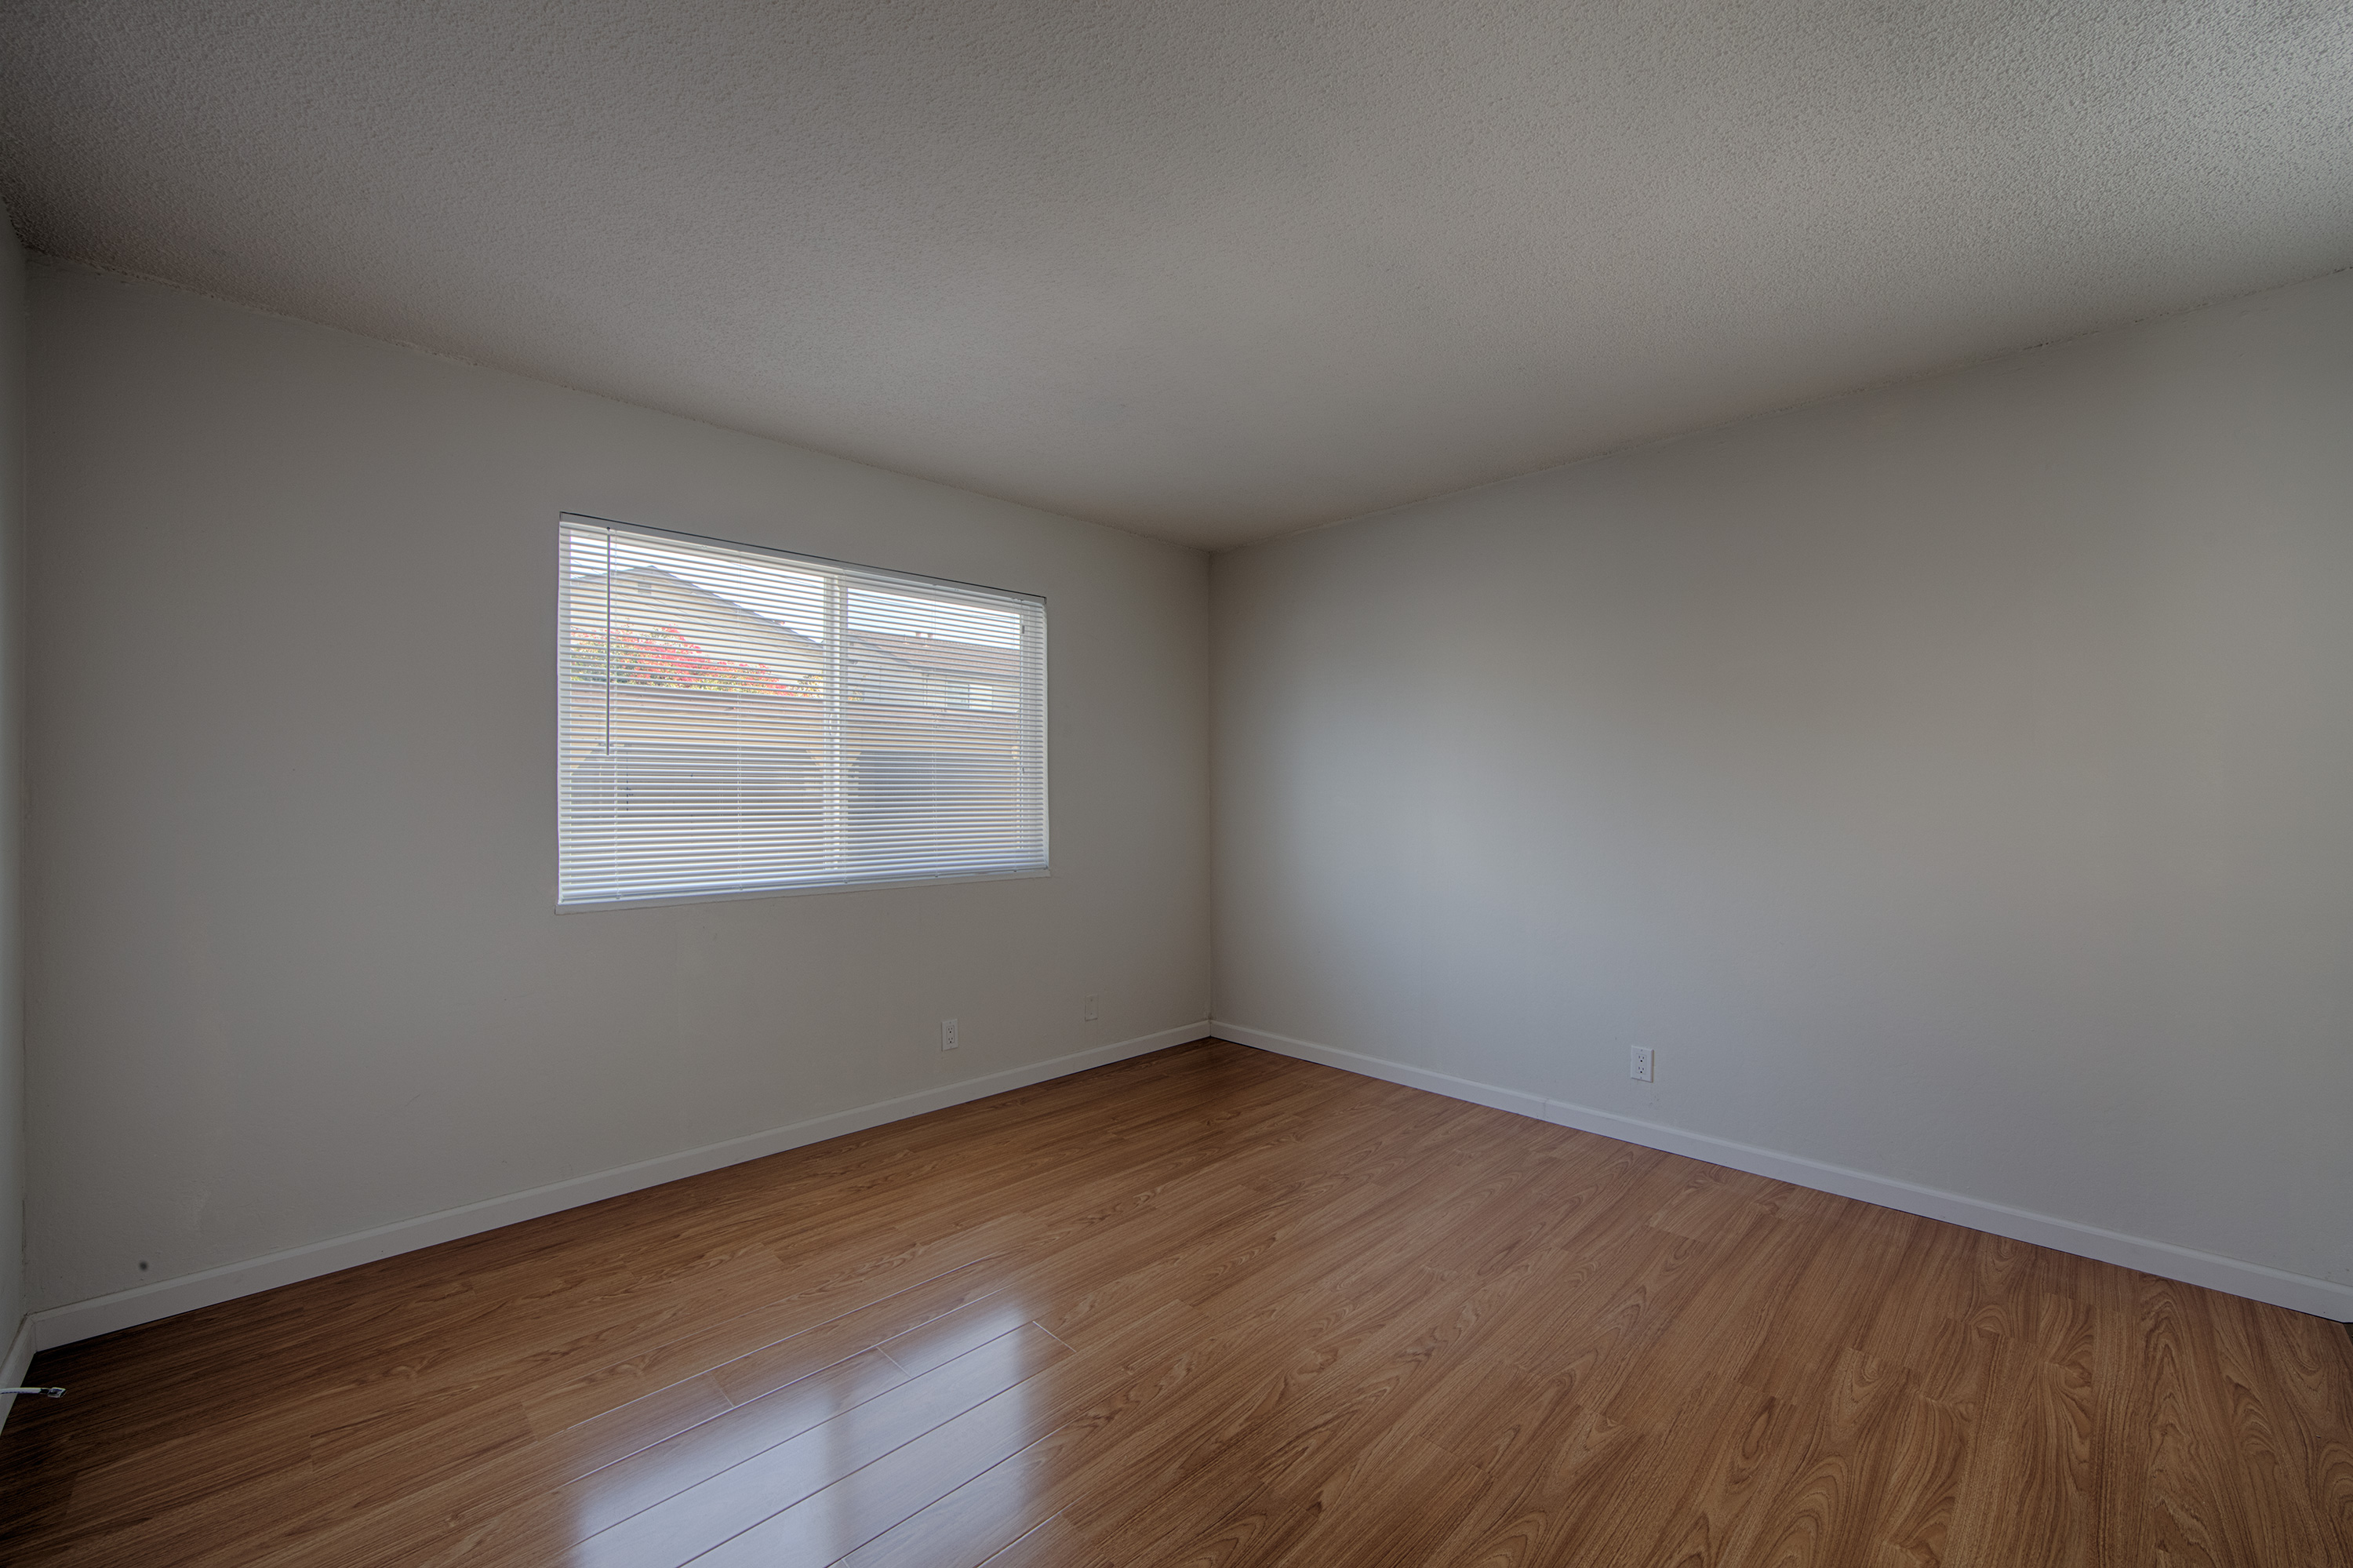 1662 Ontario Dr, Sunnyvale 94087 - Unit 2 Living Room (A)